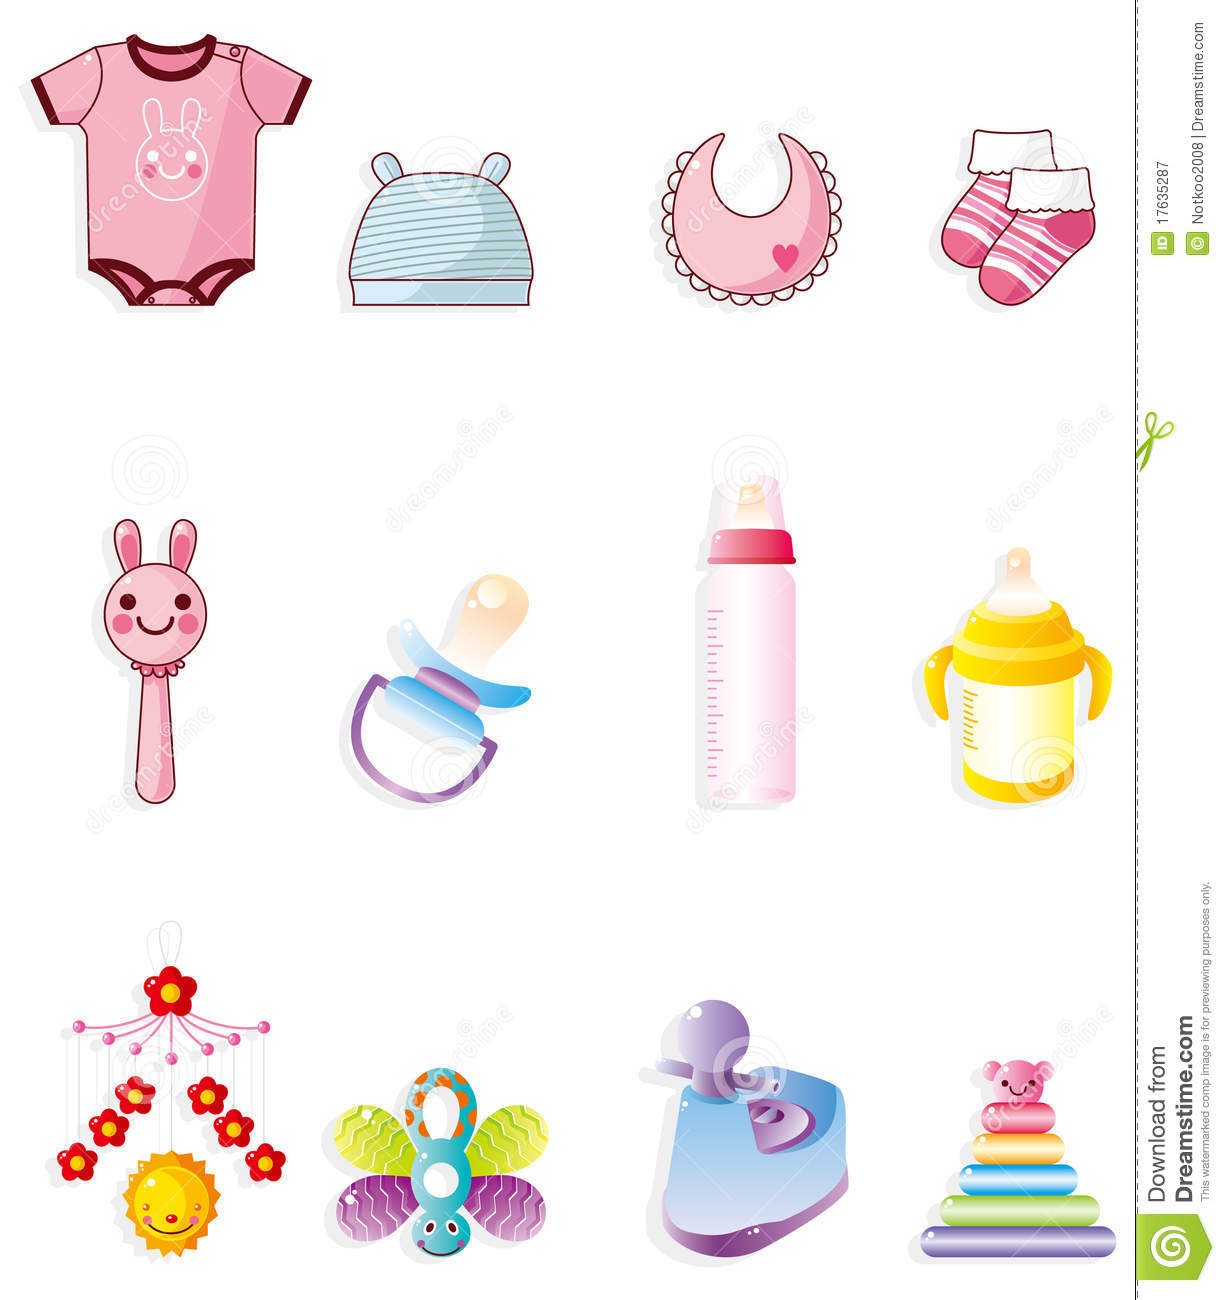 Free Images of Cartoon Babies